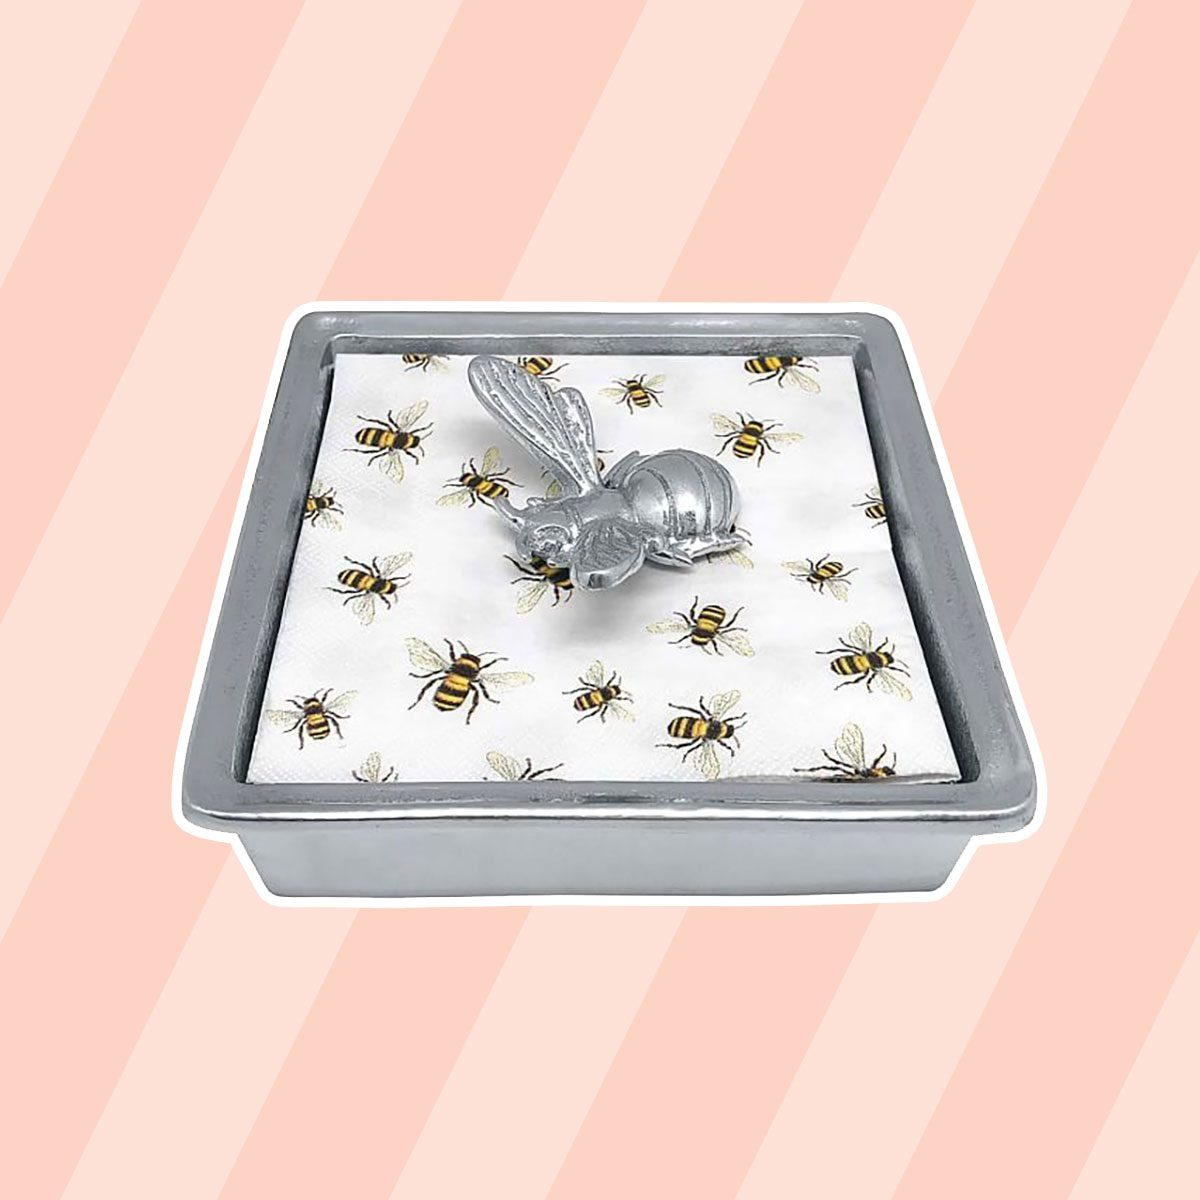 Pottery Barn Honey Bee Recycled Metal Napkin Holder